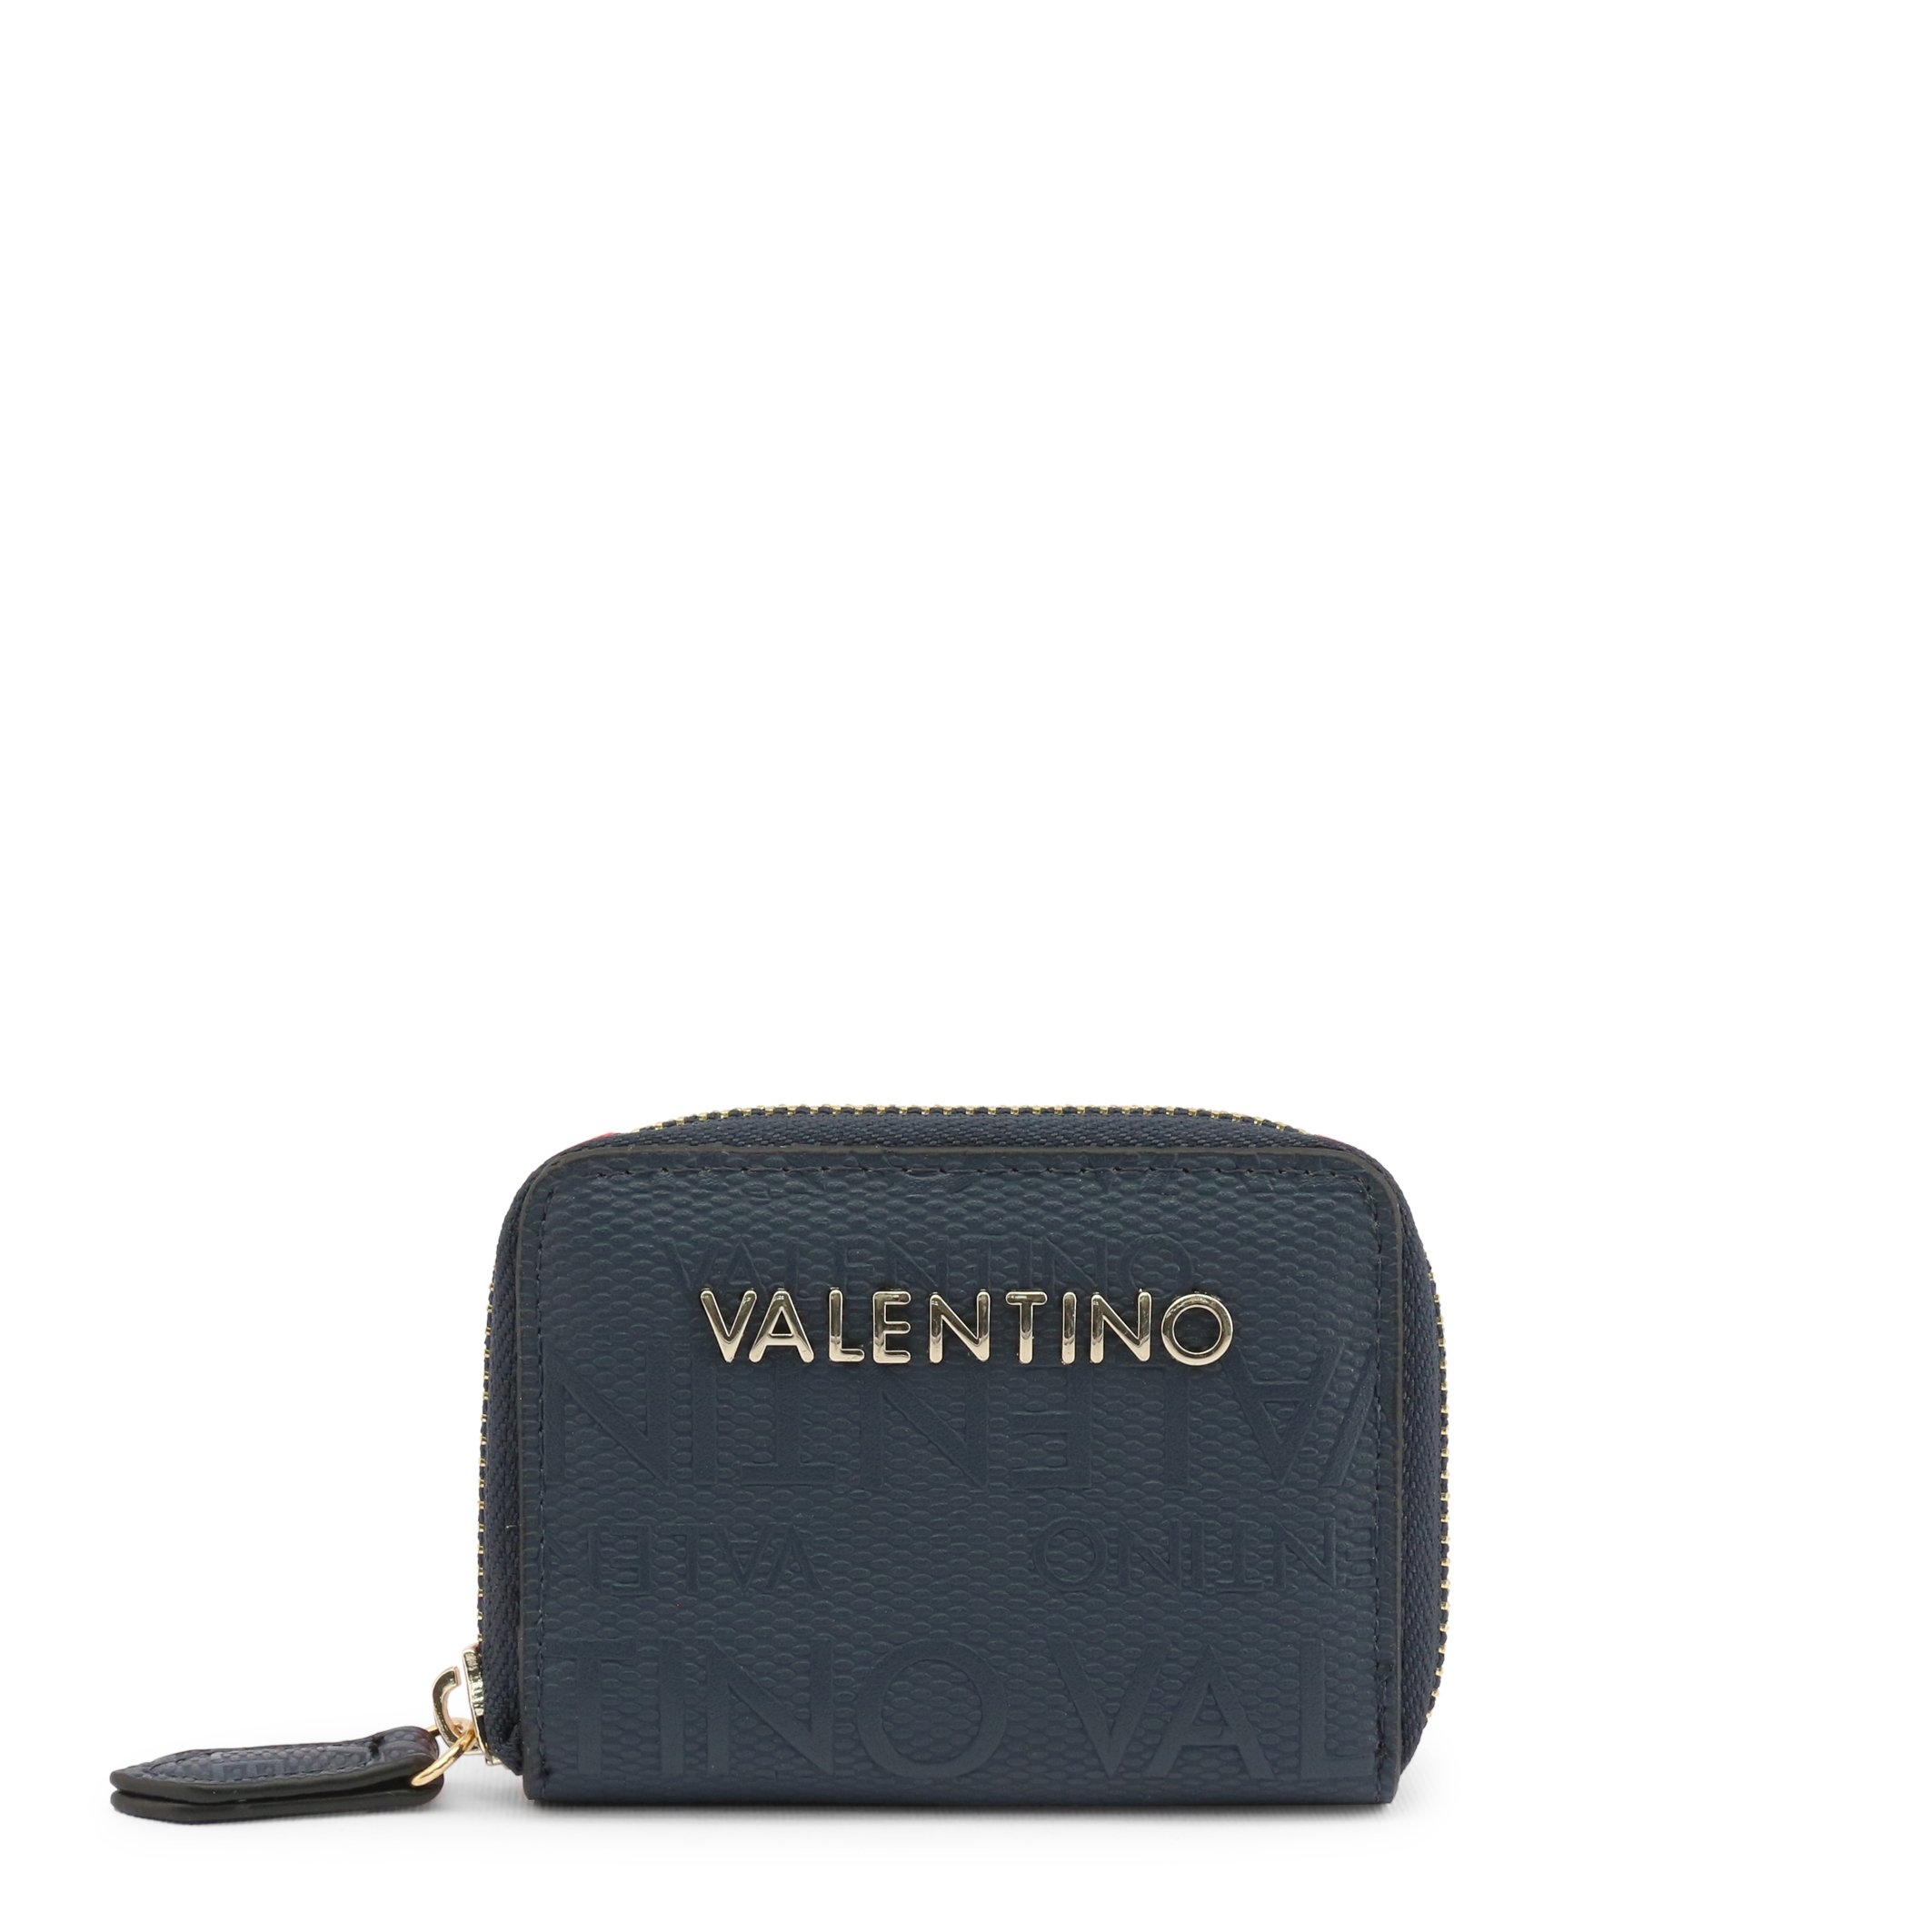 Valentino by Mario Valentino Women's Wallet Various Colours WINTERDORY-VPS3MP139 - blue NOSIZE